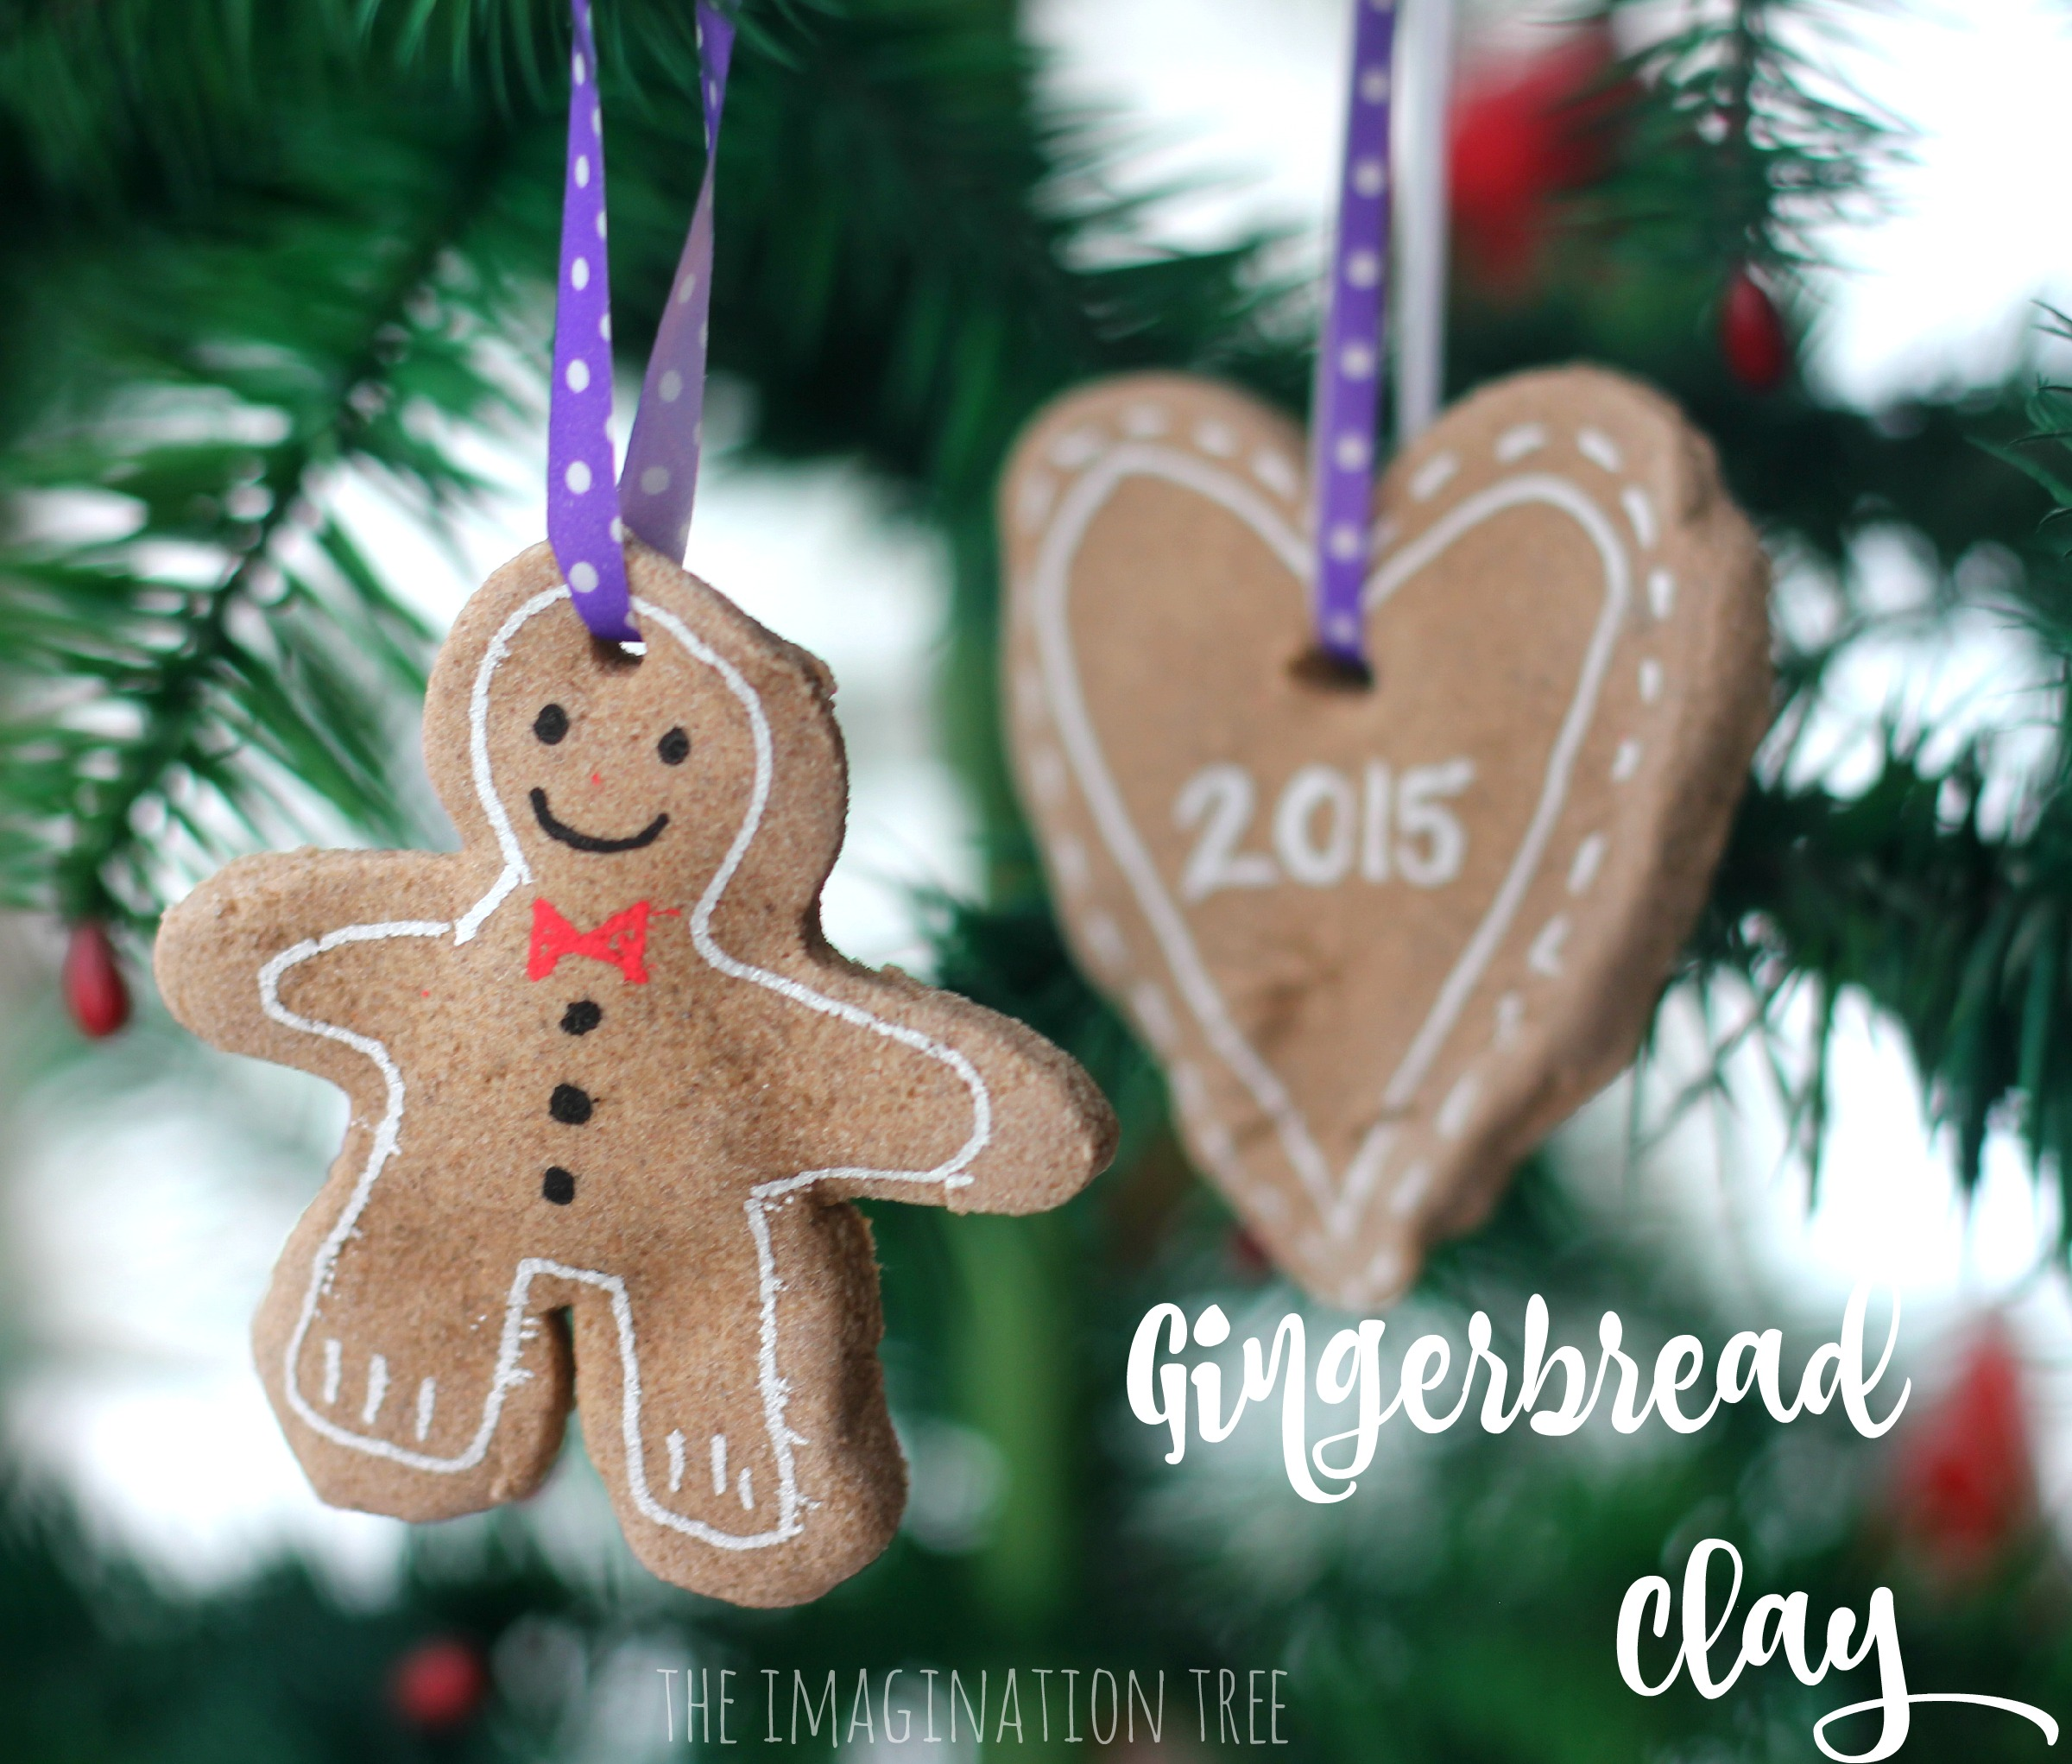 Gingerbread man ornament craft - Gingerbread Clay Recipe For Making Chrismas Tree Ornaments